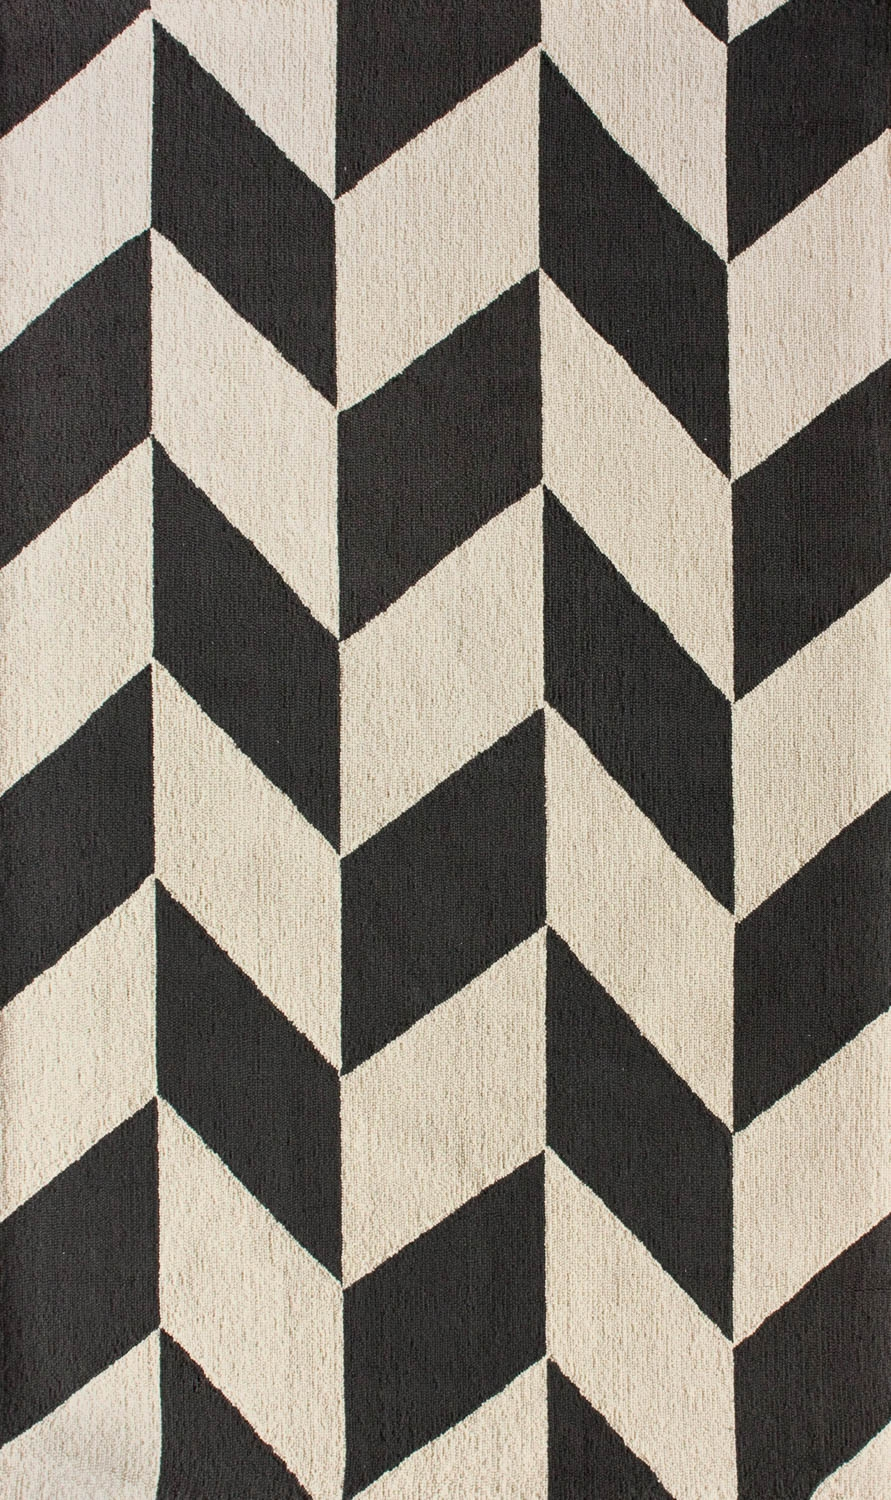 Black And Cream Chevron Rug Roselawnlutheran In Cream And Black Carpets (Image 1 of 15)